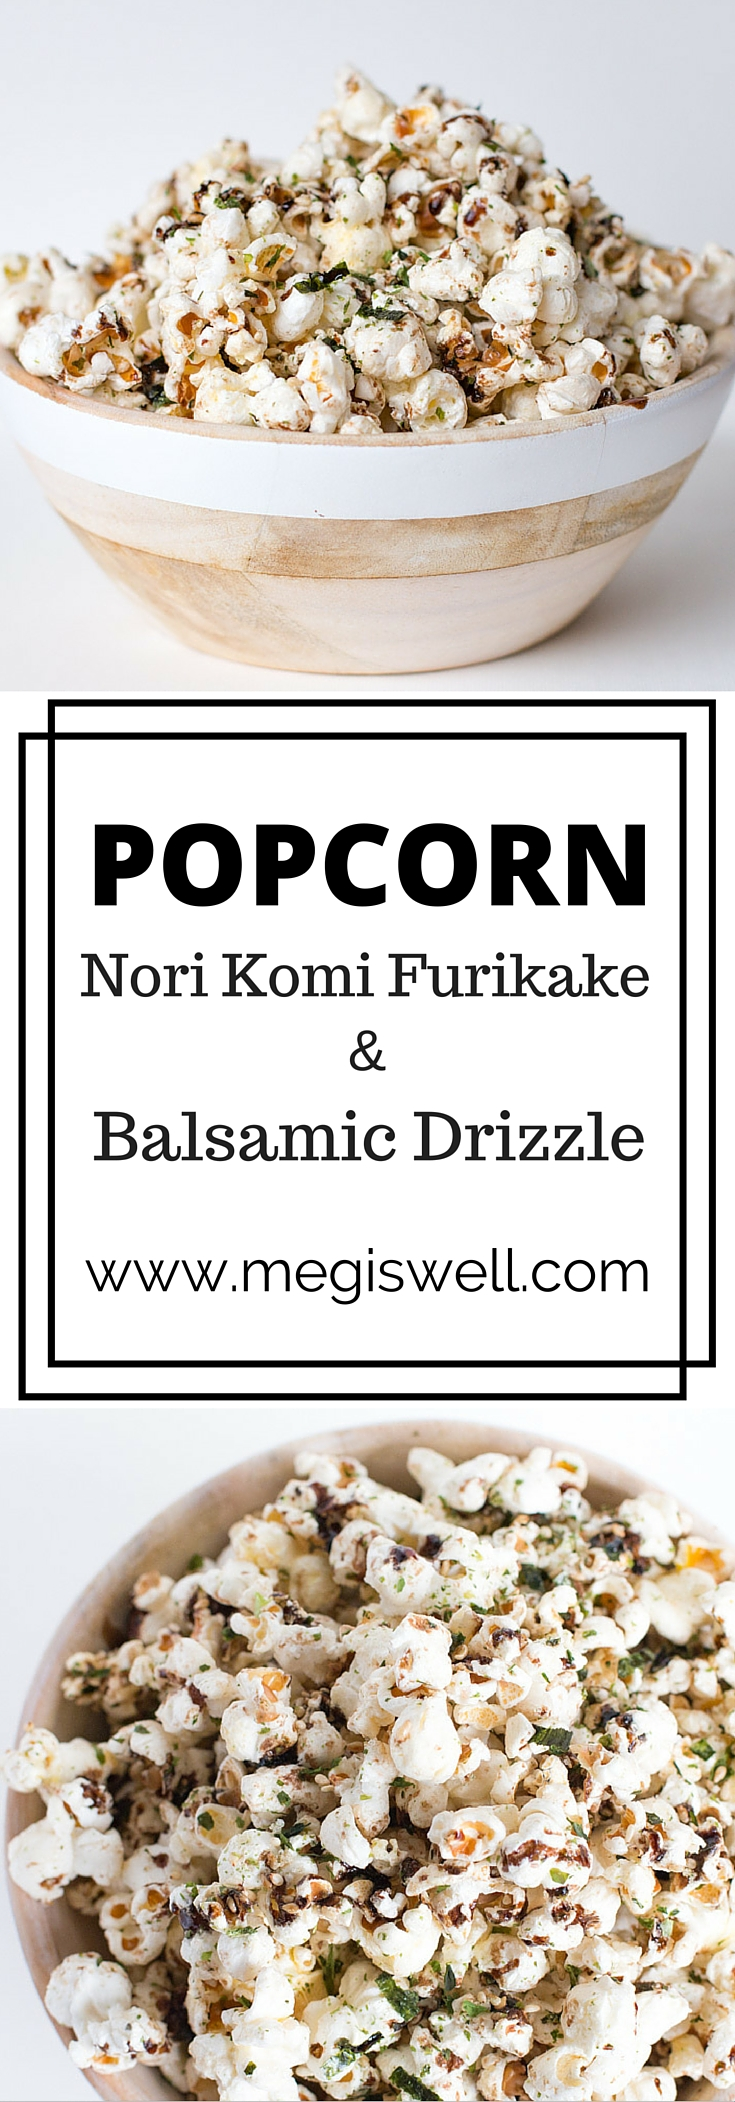 Nori Komi Furikake and Balsamic Drizzle Popcorn is an addicting snack with the perfect mix of sweet and salty flavors in each bite.